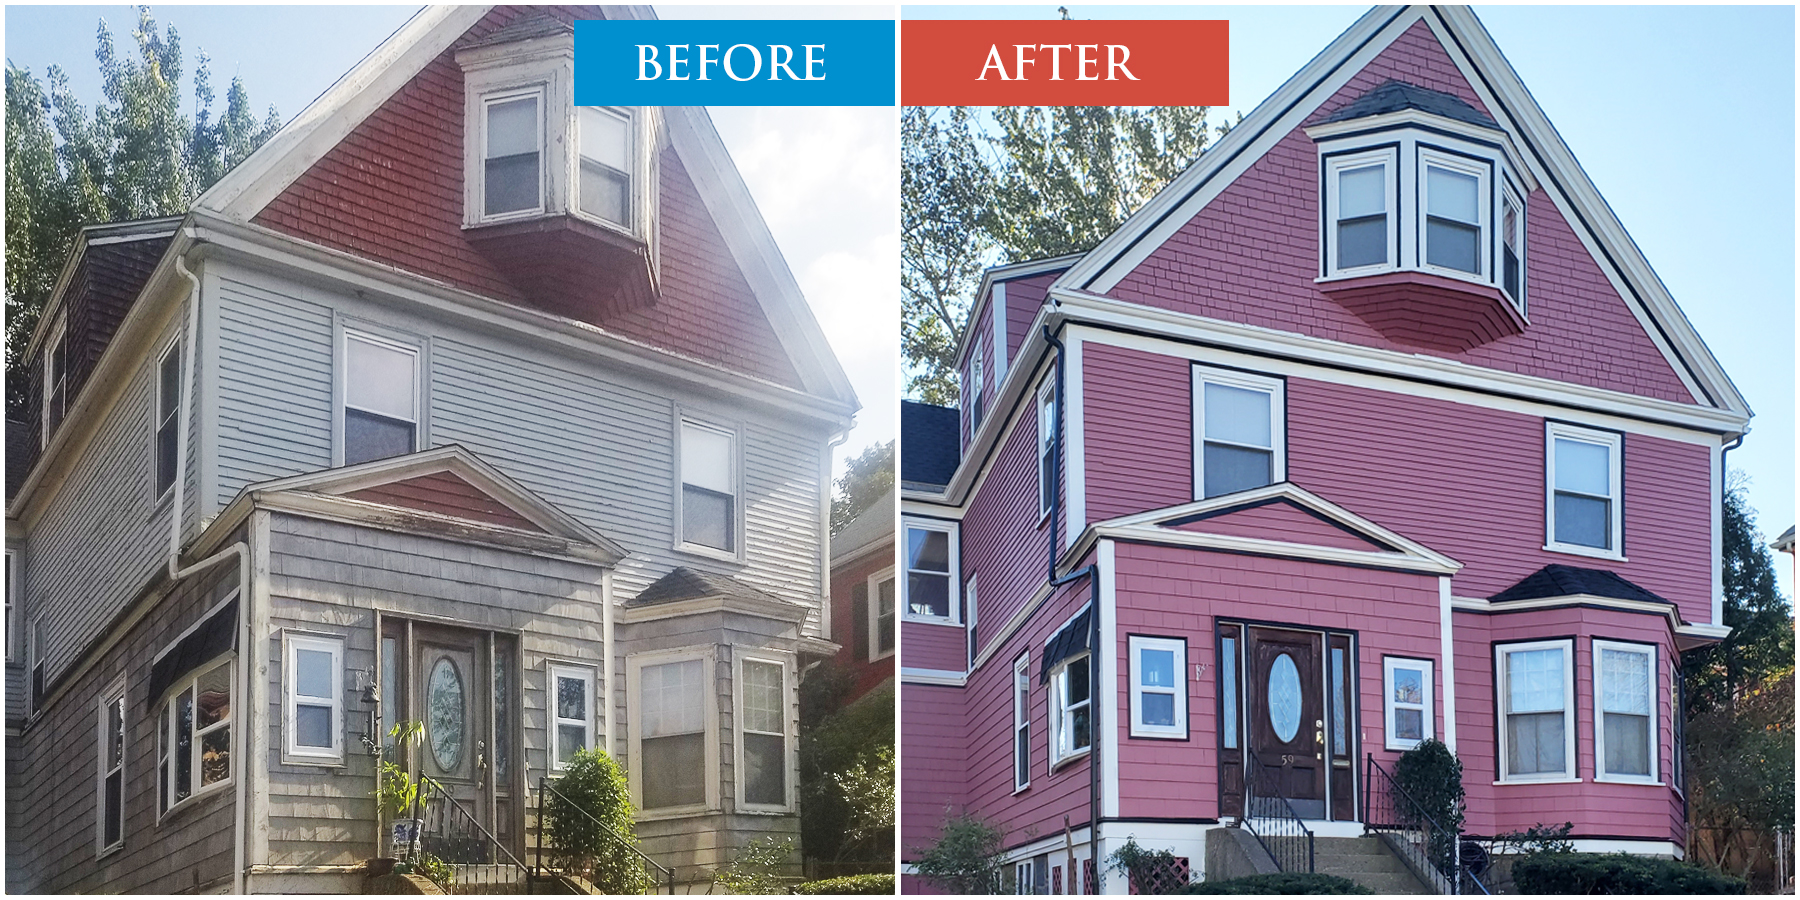 House Painting. Before and After. Boston, MA